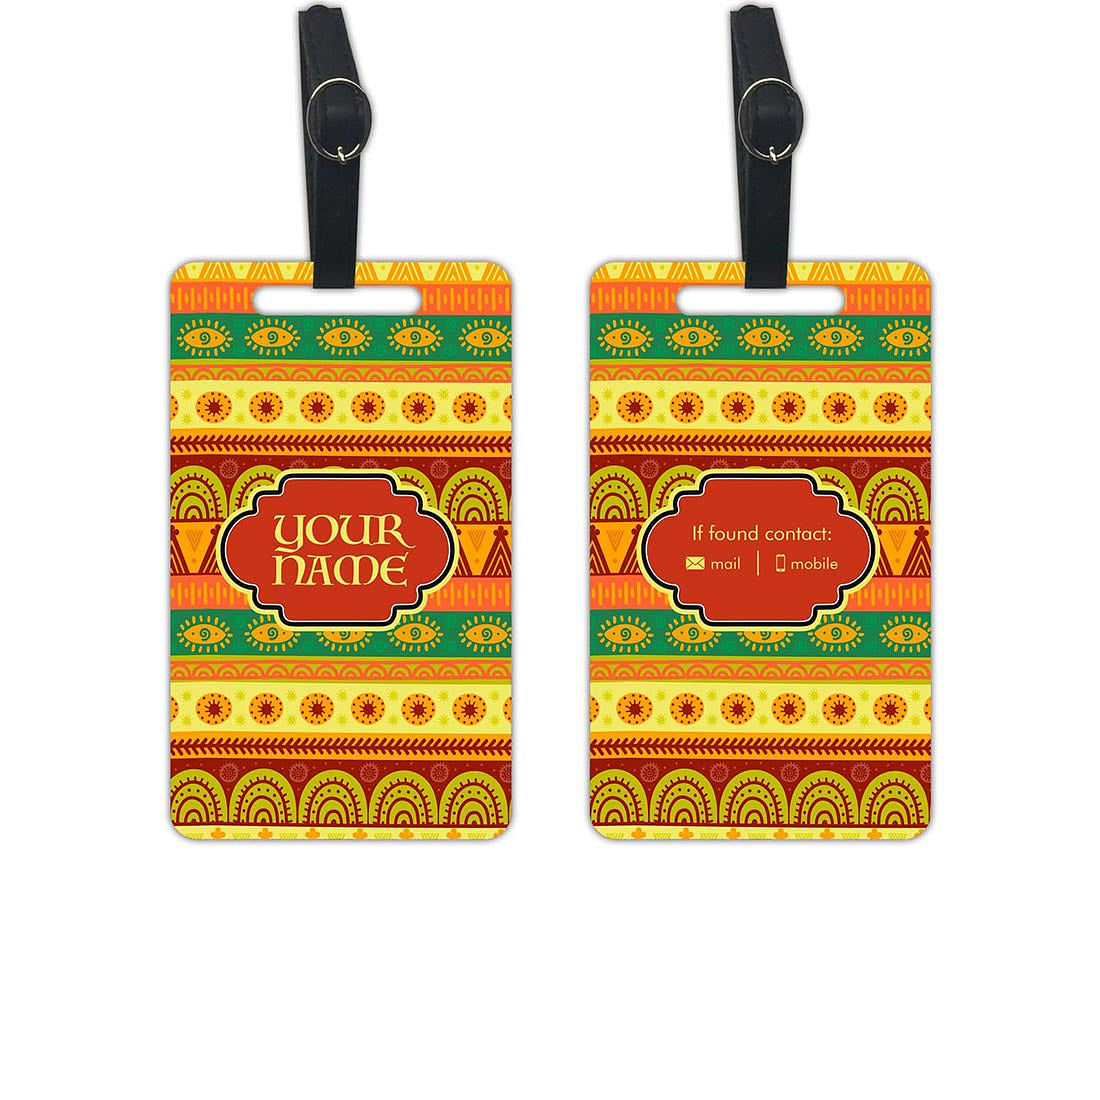 Custom Printed Luggage Tag for Bag - Add your Name - Set of 2